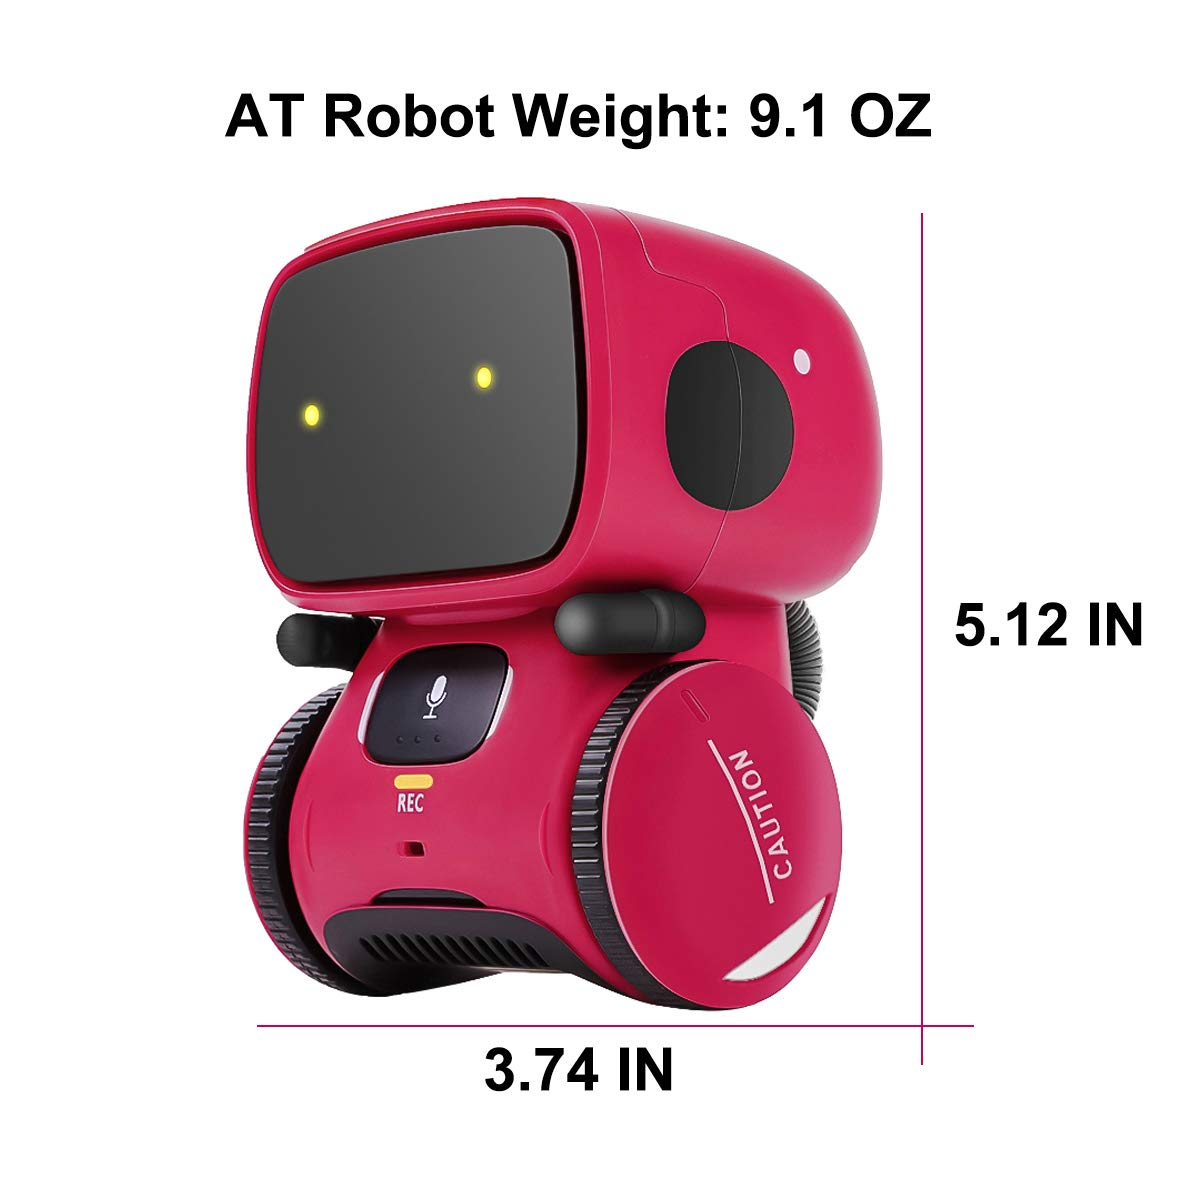 Kids Robot Toy, Smart Talking Robots, Gift for Boys and Girls Age 3+, Intelligent partner and teacher, with Voice Controlled and Touch Sensor, Singing, Dancing, Repeating by 98K (Image #2)